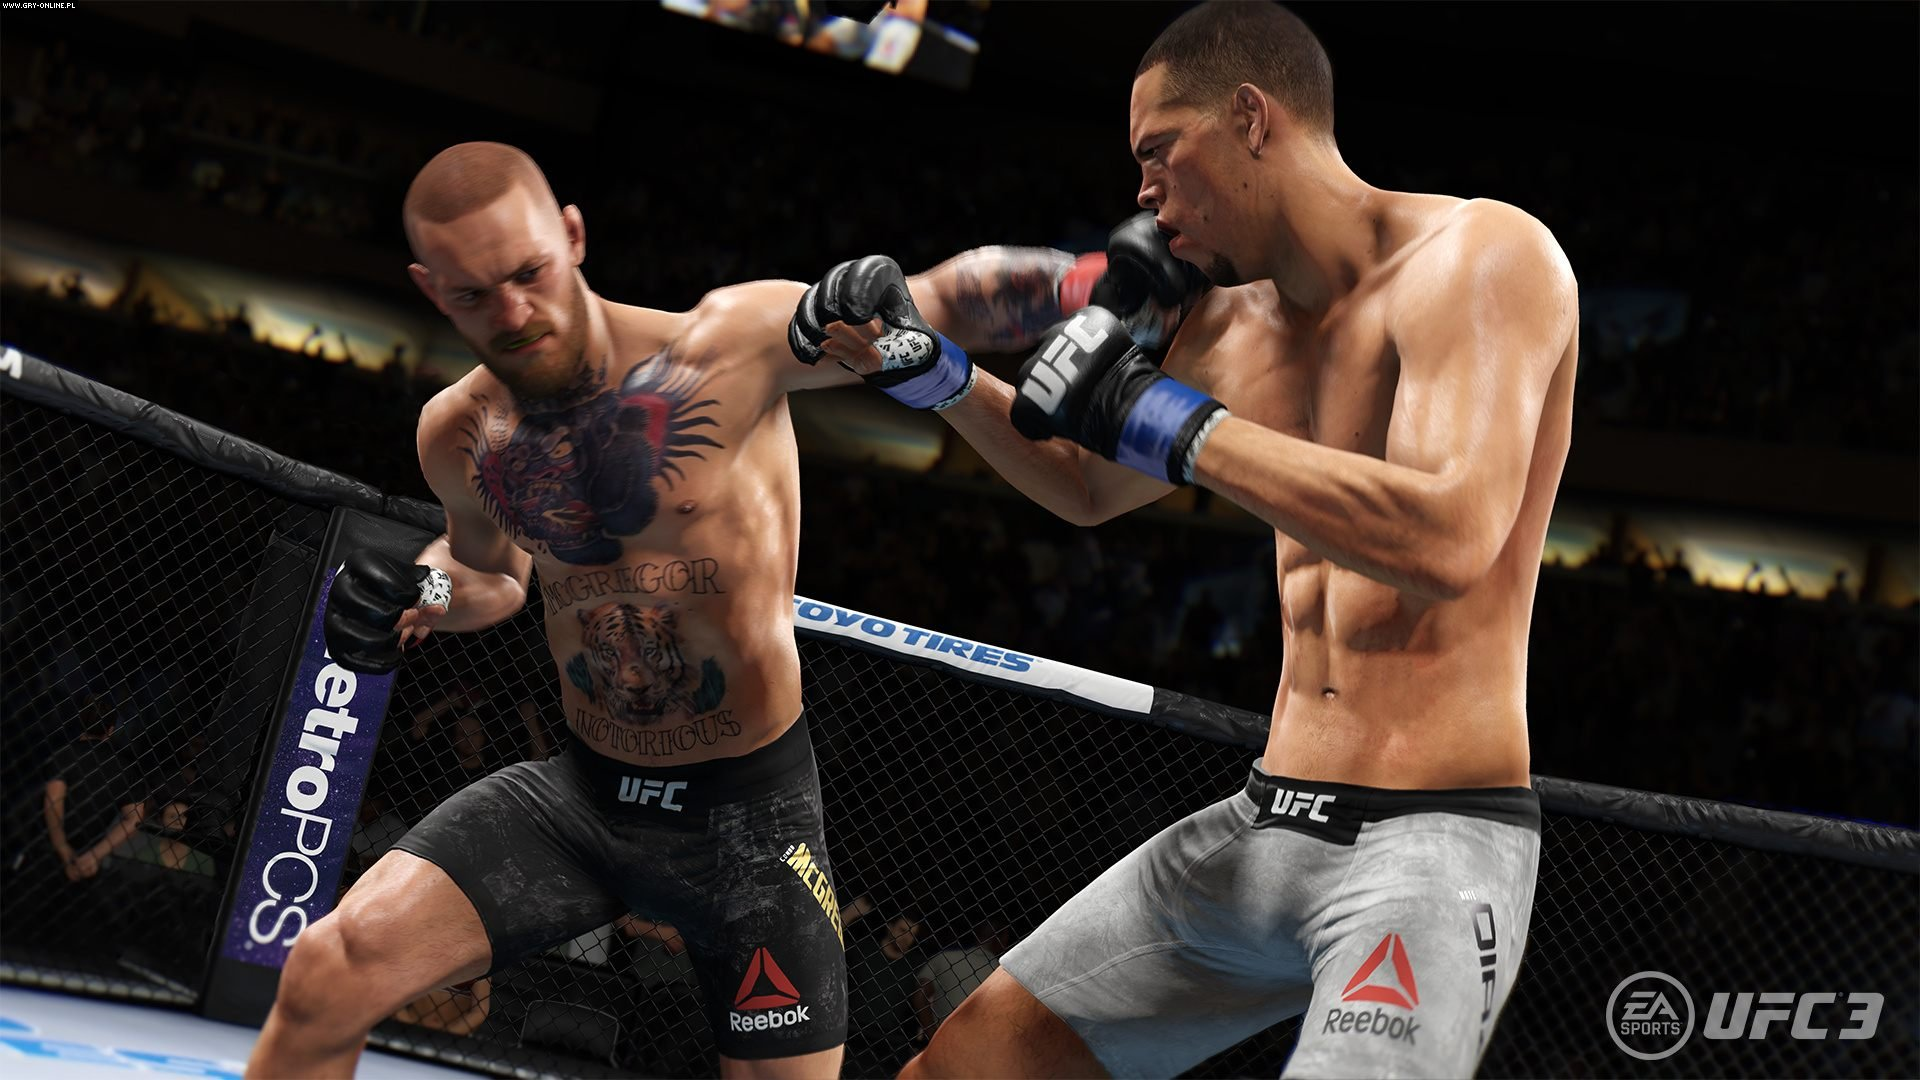 EA Sports UFC 3 PS4, XONE Gry Screen 7/8, EA Sports, Electronic Arts Inc.